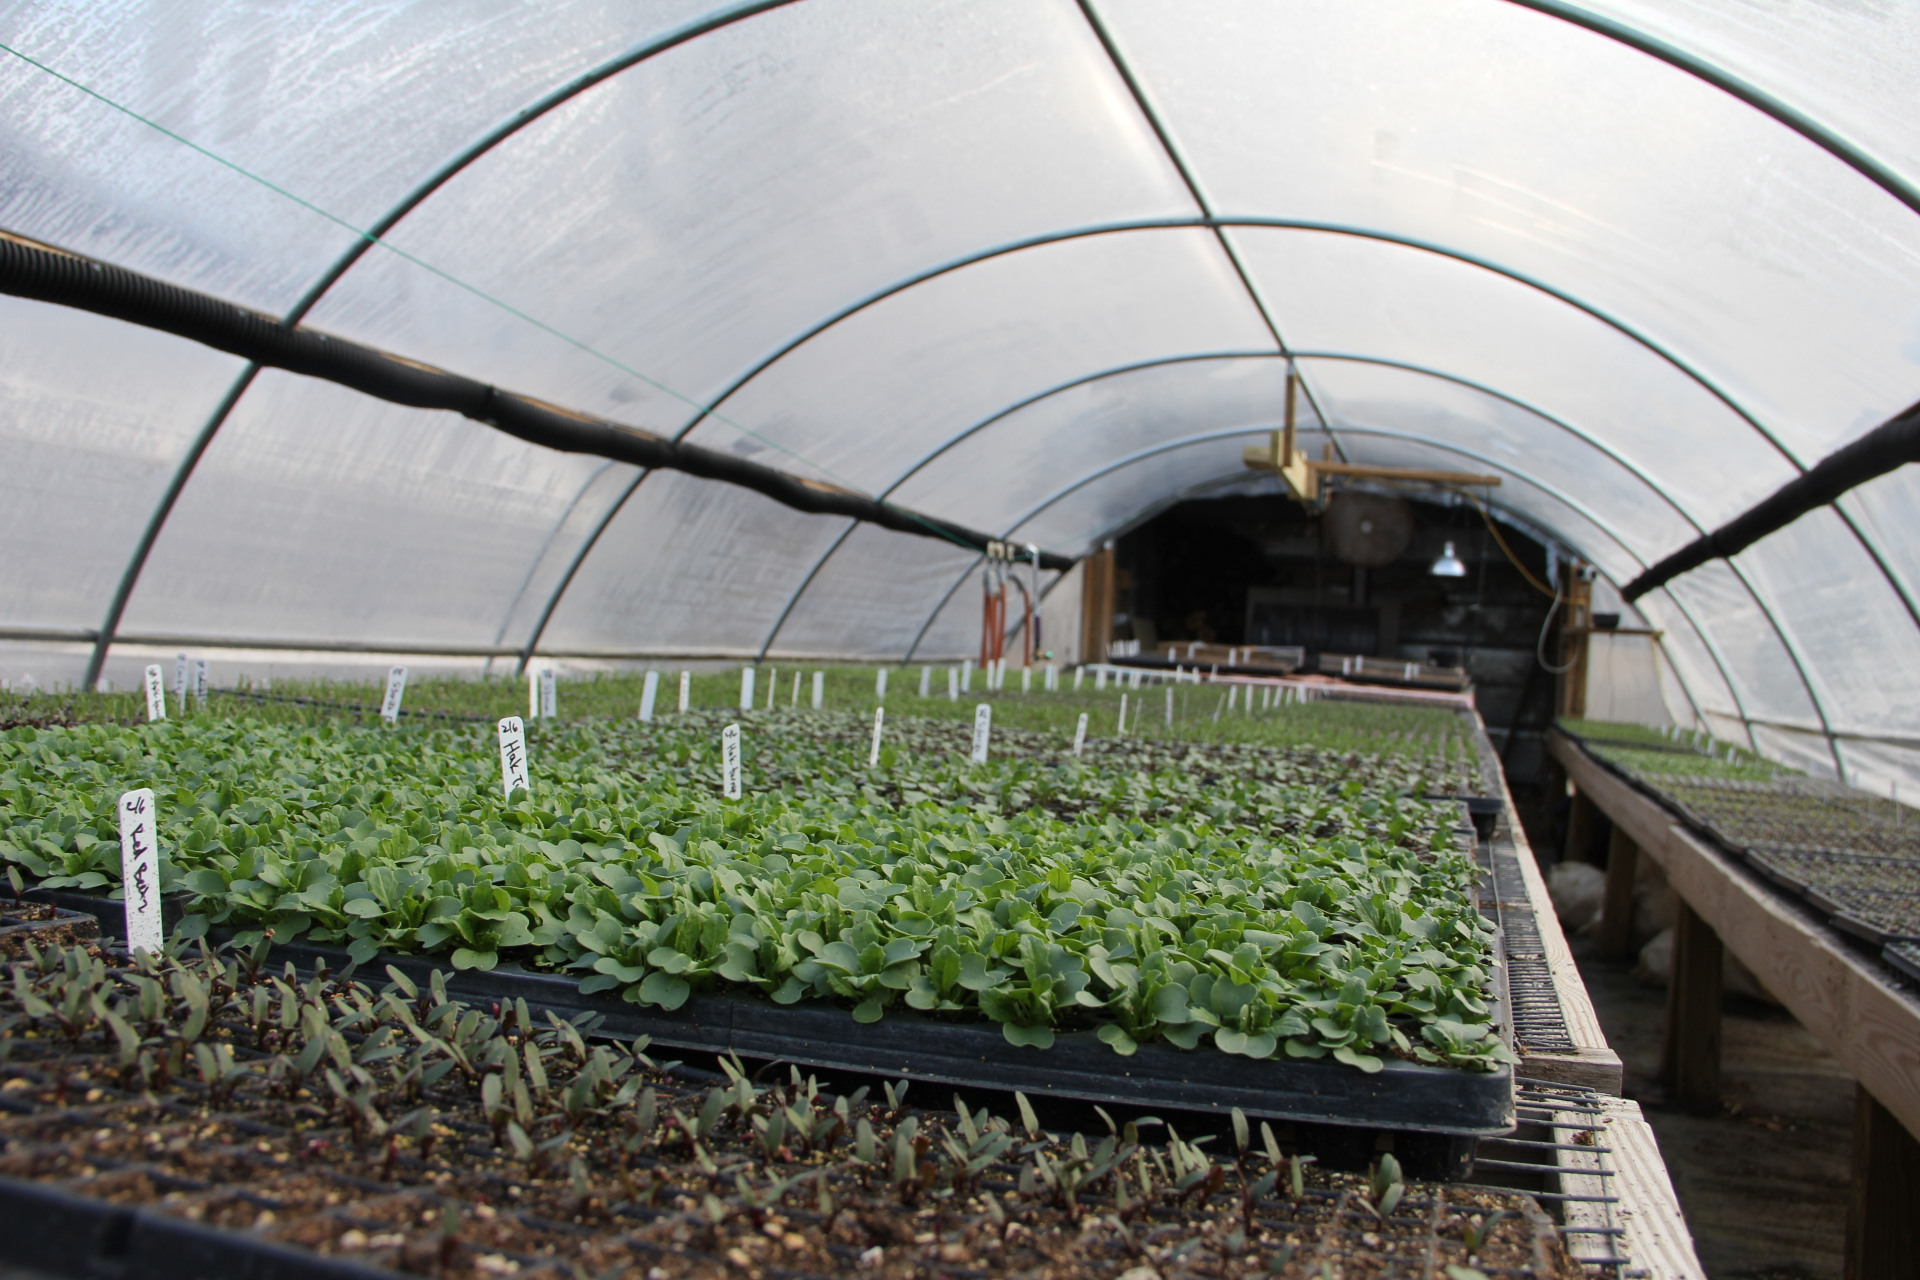 In our propogation house, we start most of our plants from seed